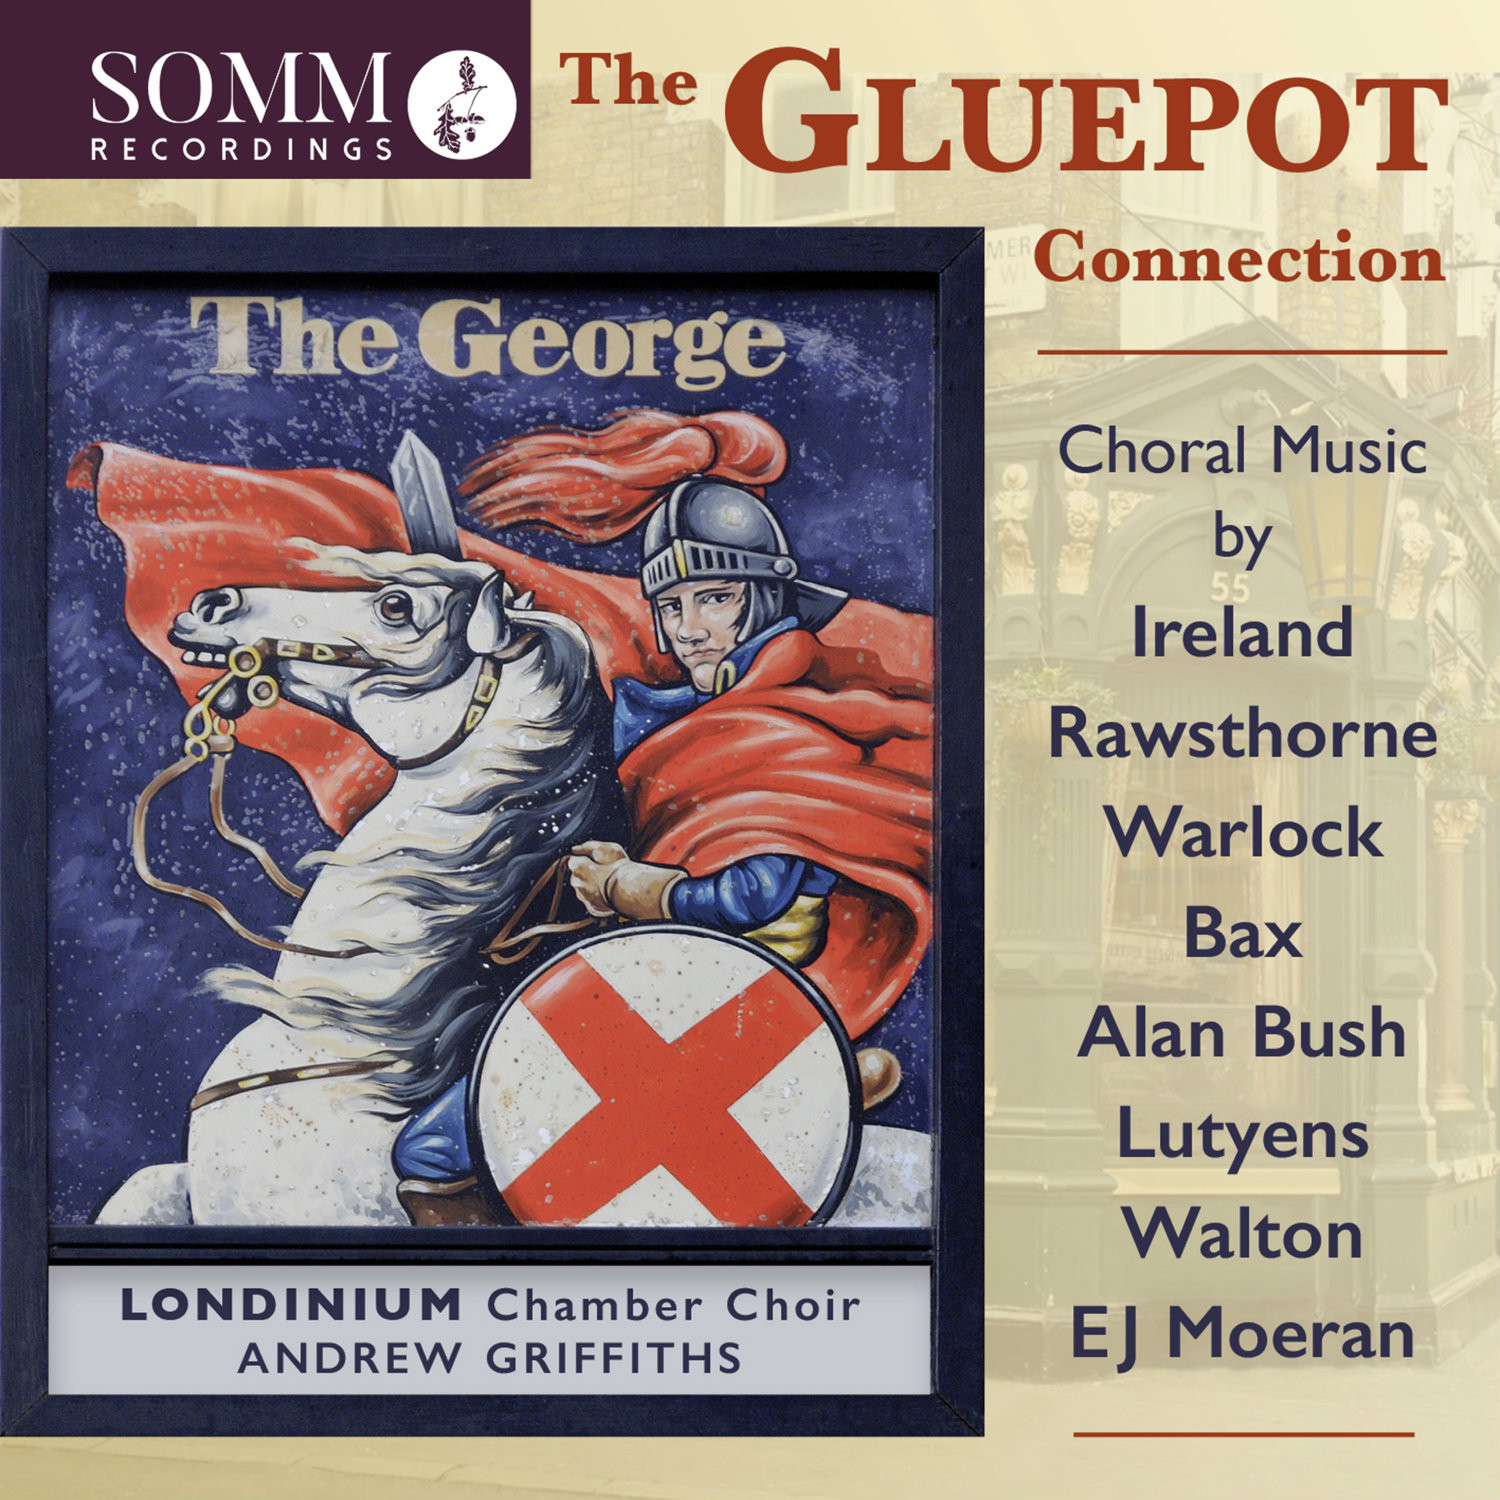 The Gluepot Connection - SOMM Recordings, 2018